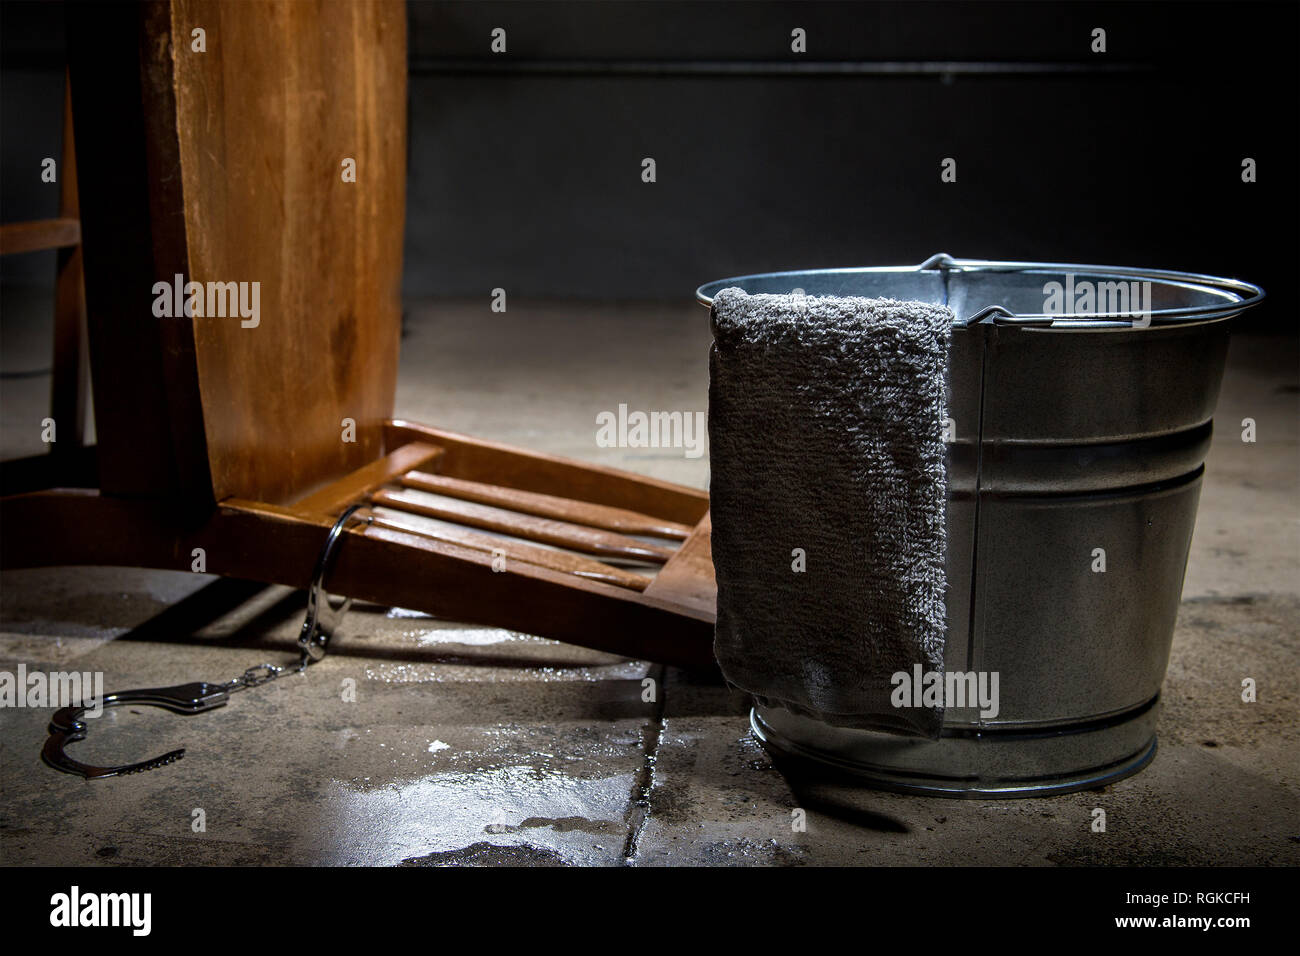 Torture chamber with a water bucket for controversial waterboarding - Stock Image